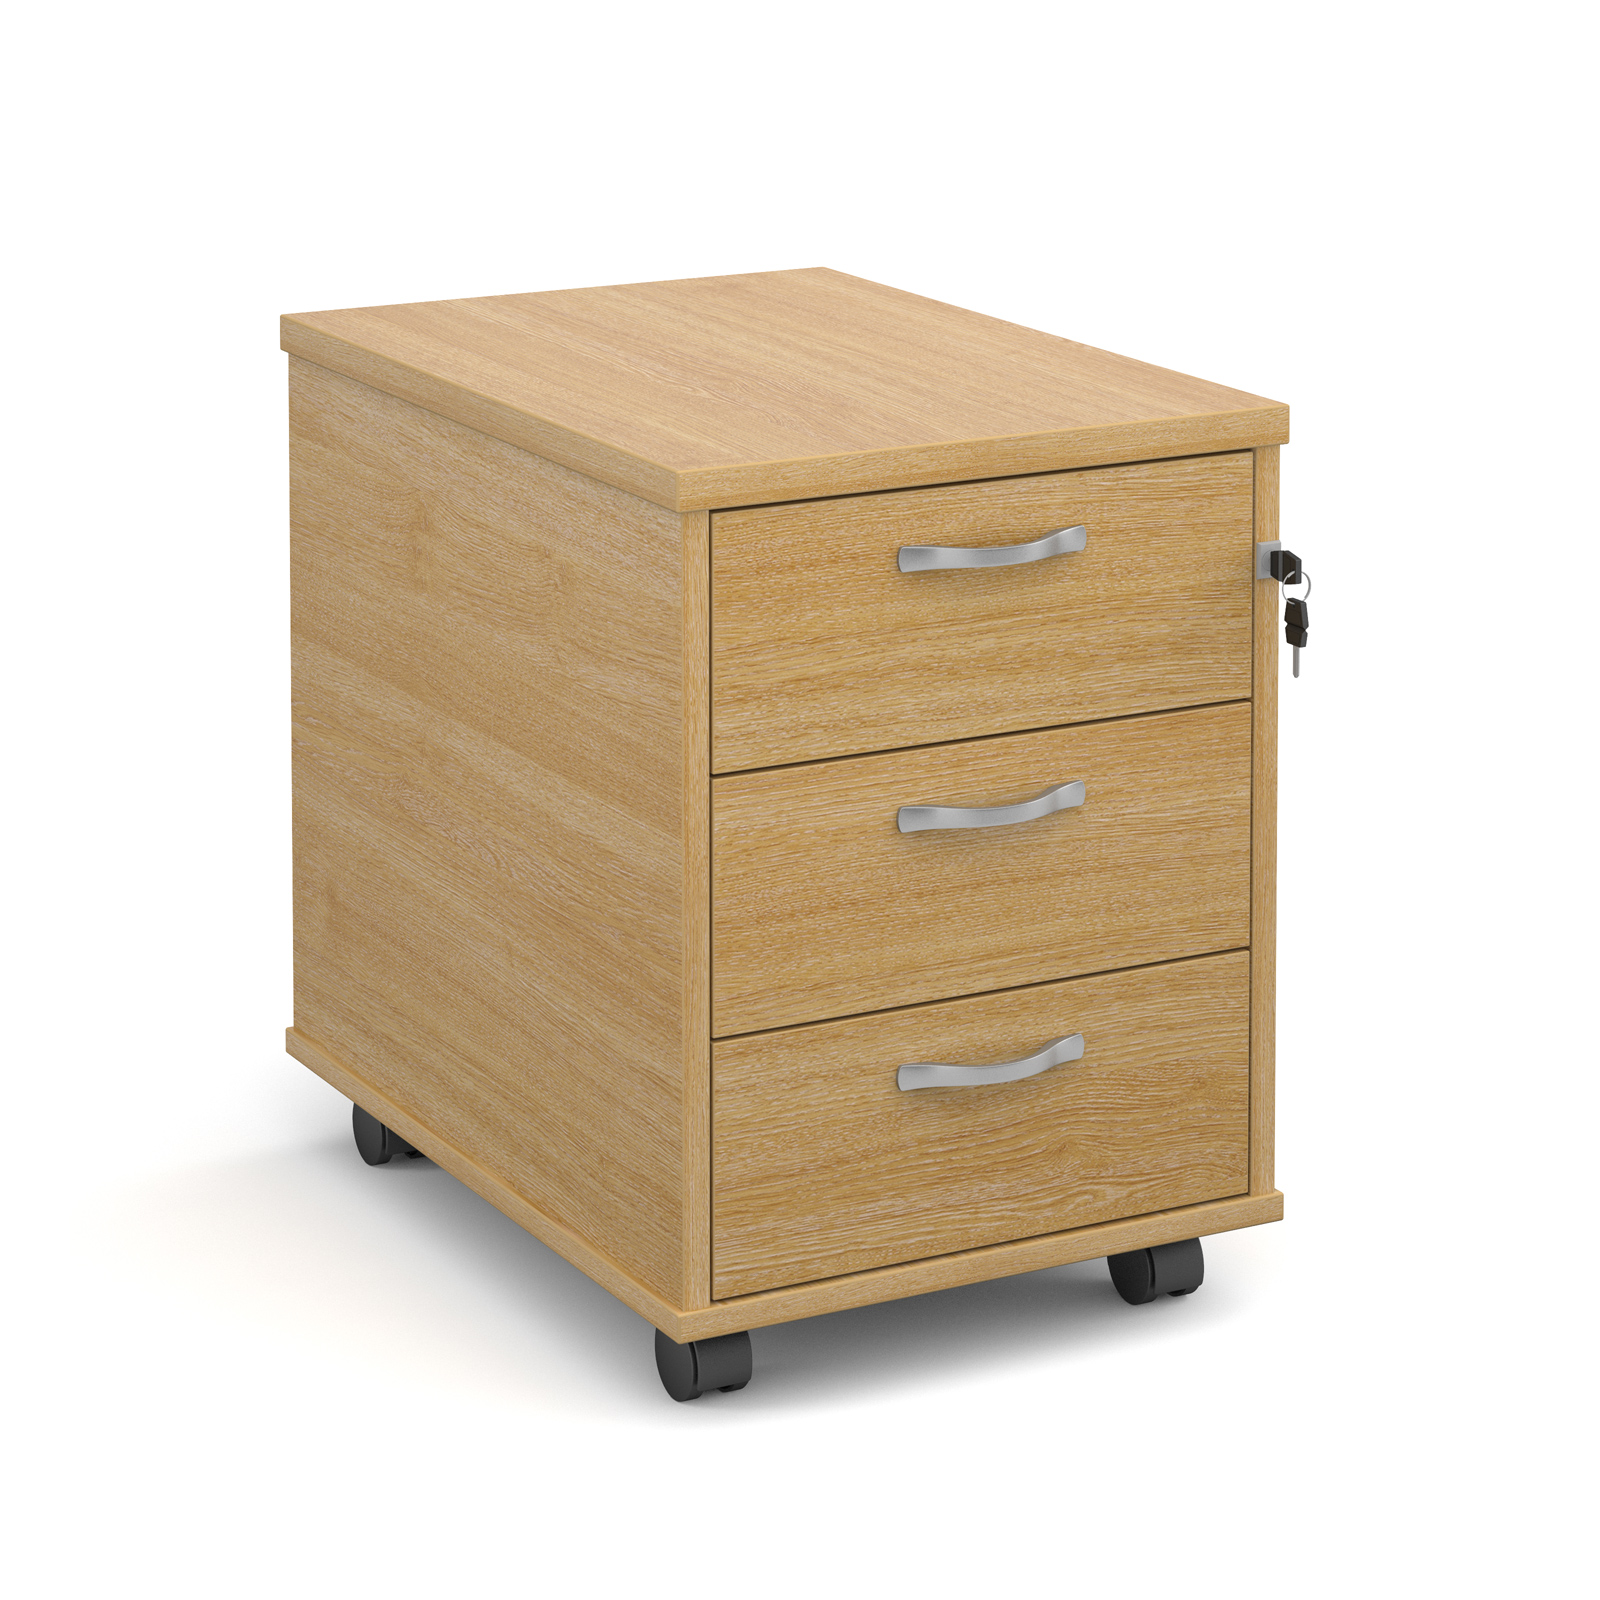 3 Drawer Mobile Pedestal in oak